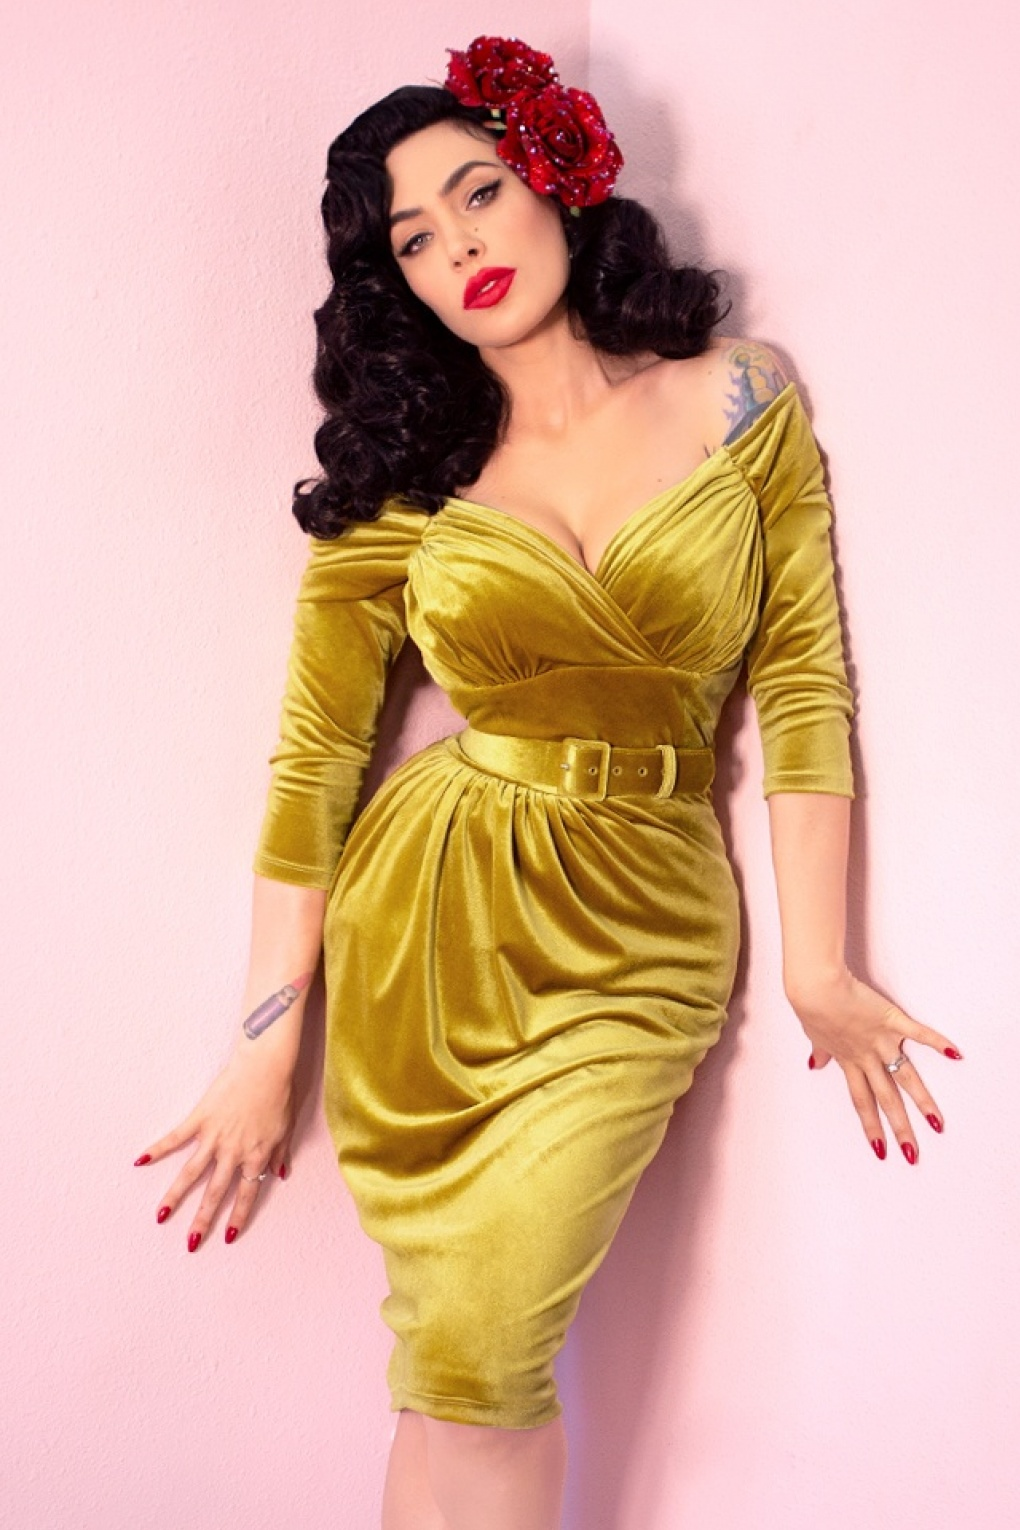 1950s Dresses, 50s Dresses | 1950s Style Dresses 50s Starlet Pencil Dress in Gold £200.40 AT vintagedancer.com